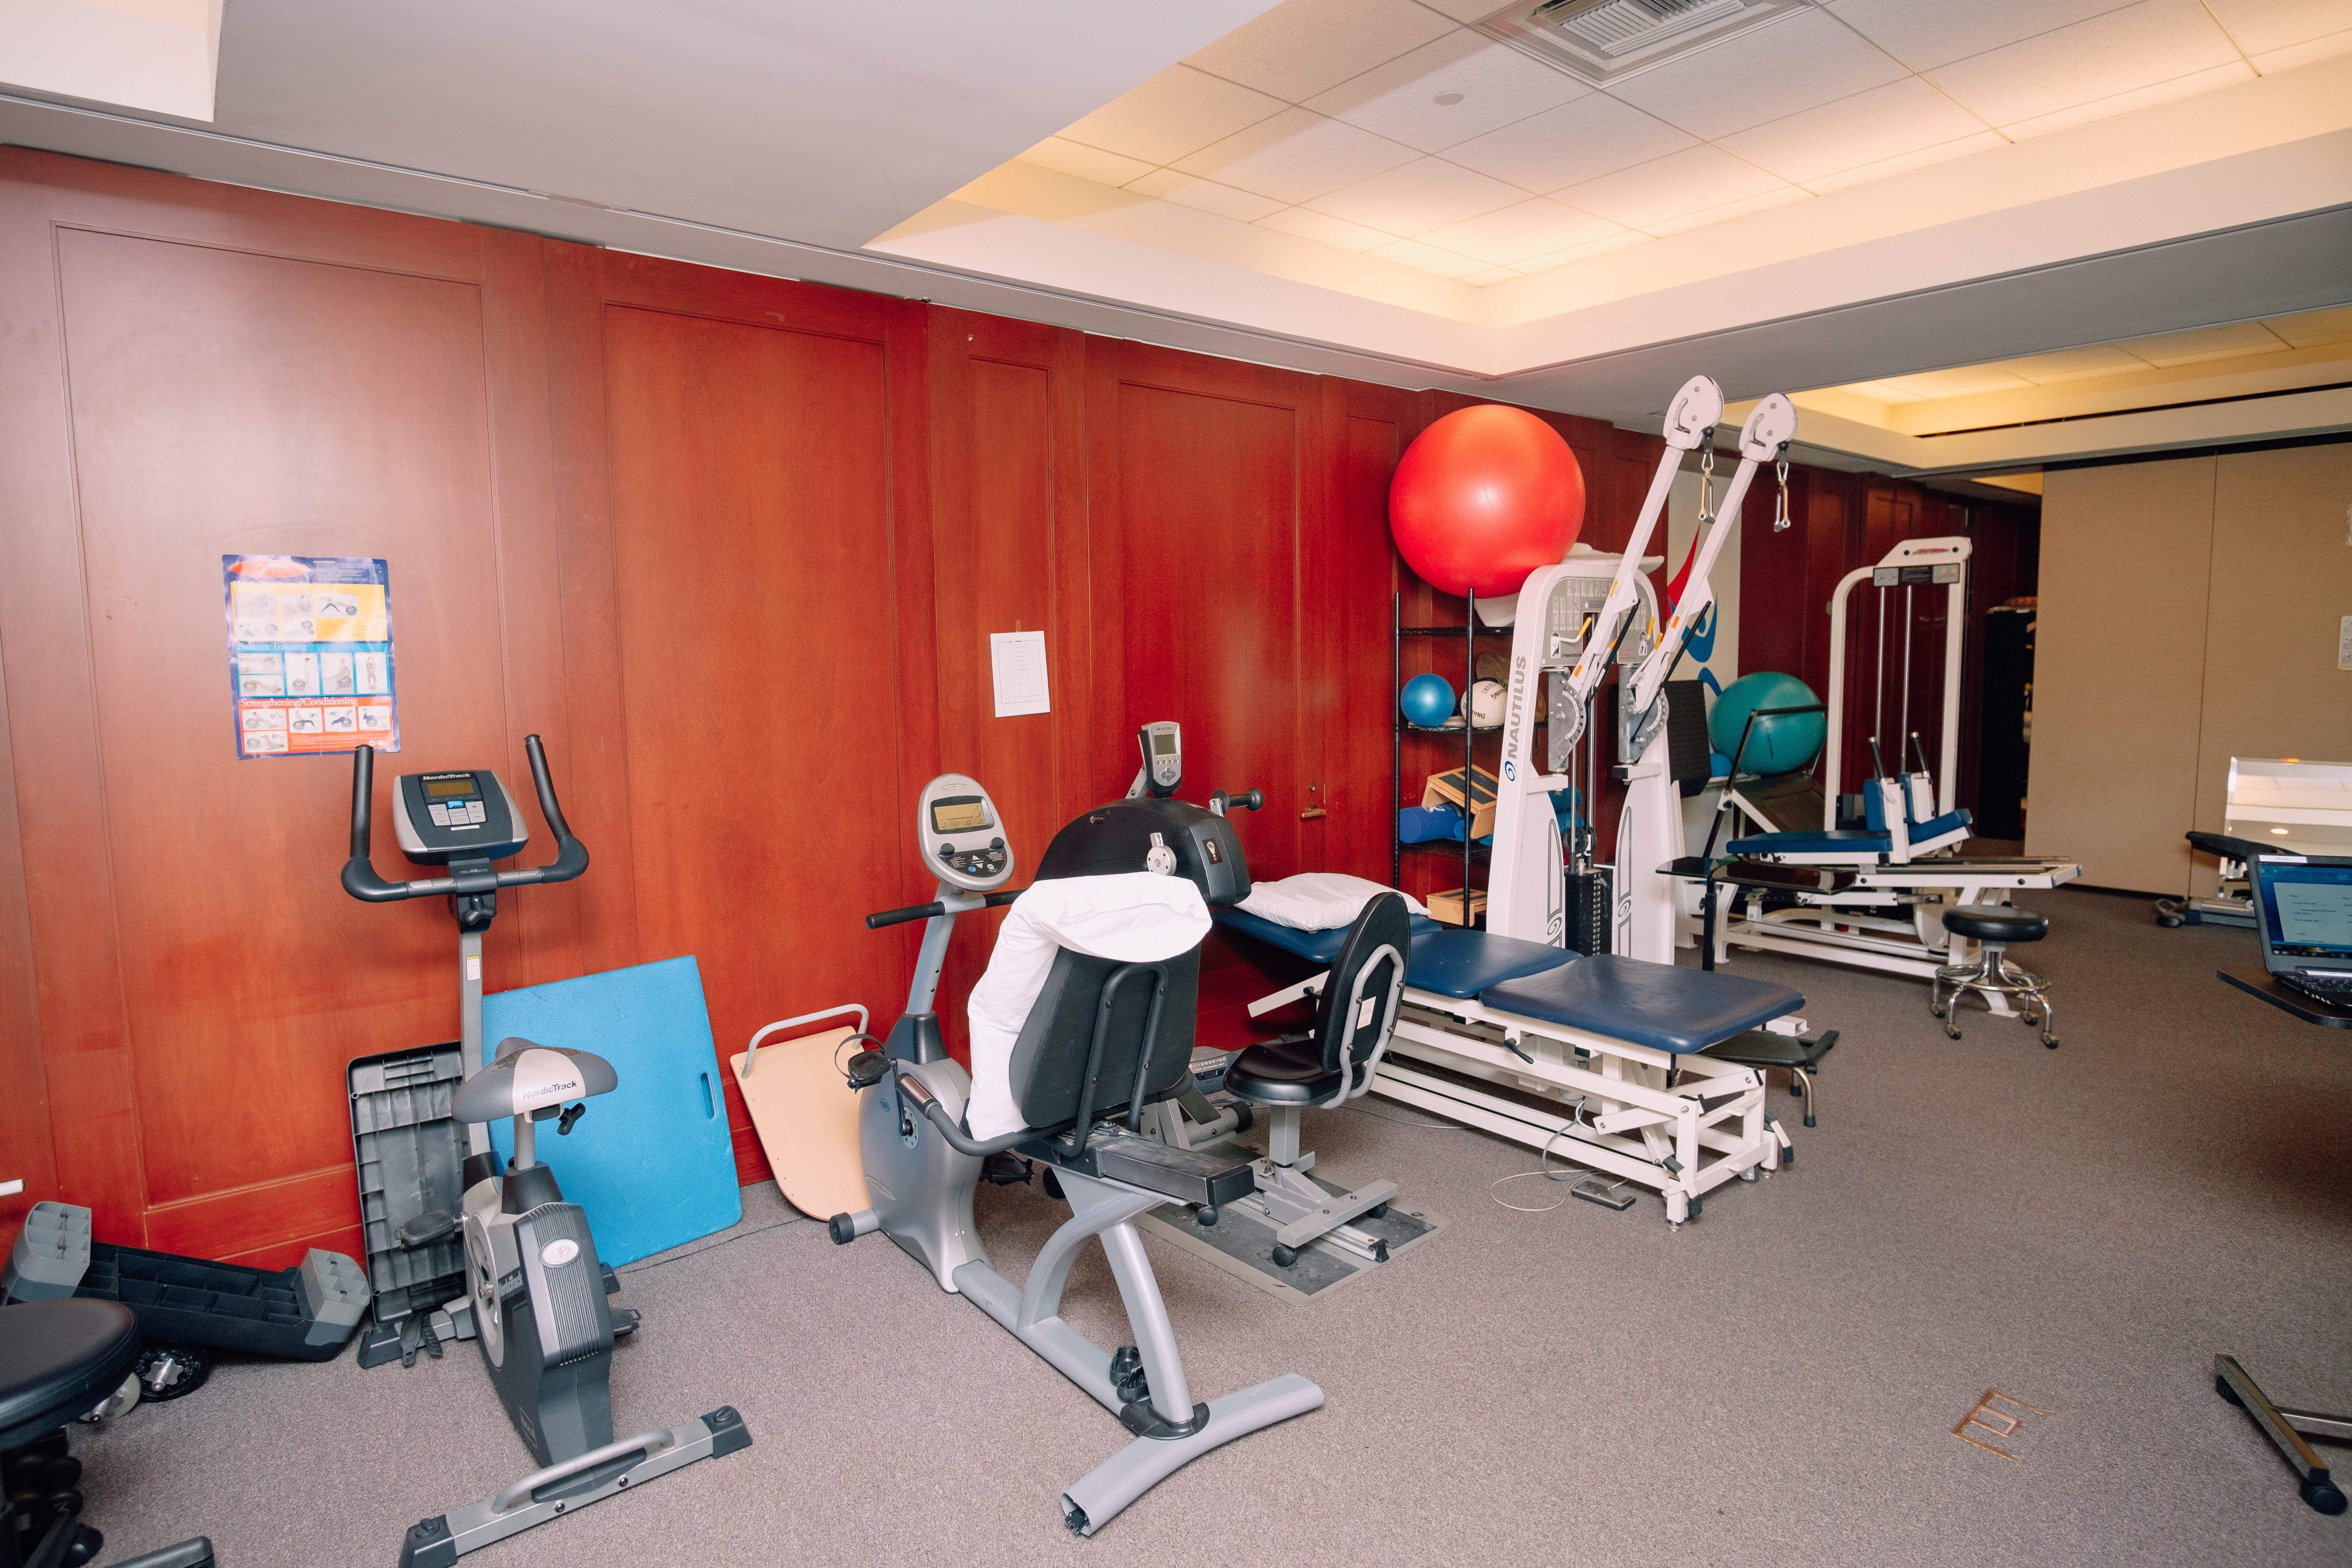 Therapists | Aiea, HI | StayFIT Physical Therapy LLC